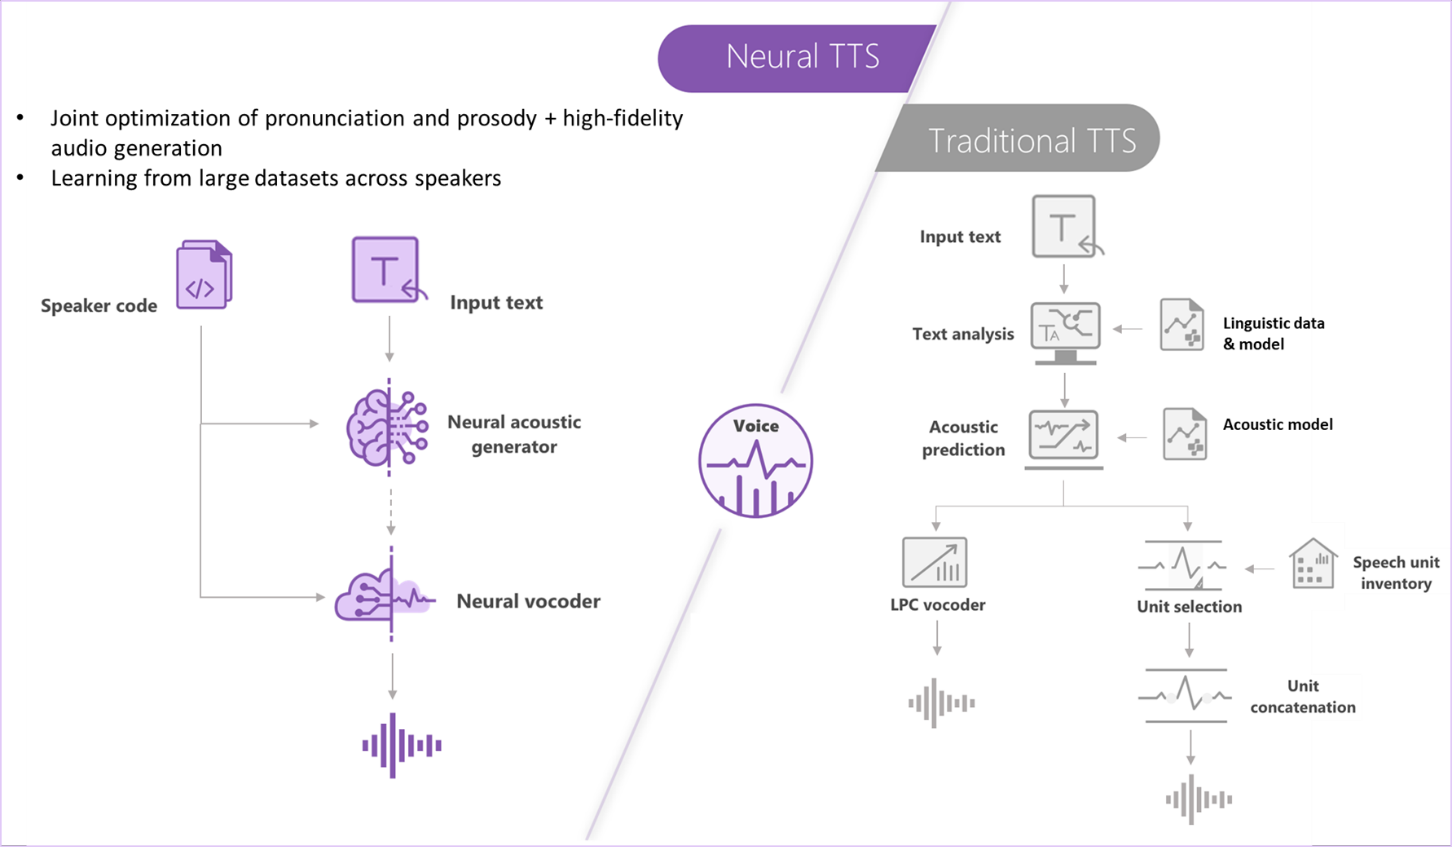 Neural TTS vs Traditional TTS